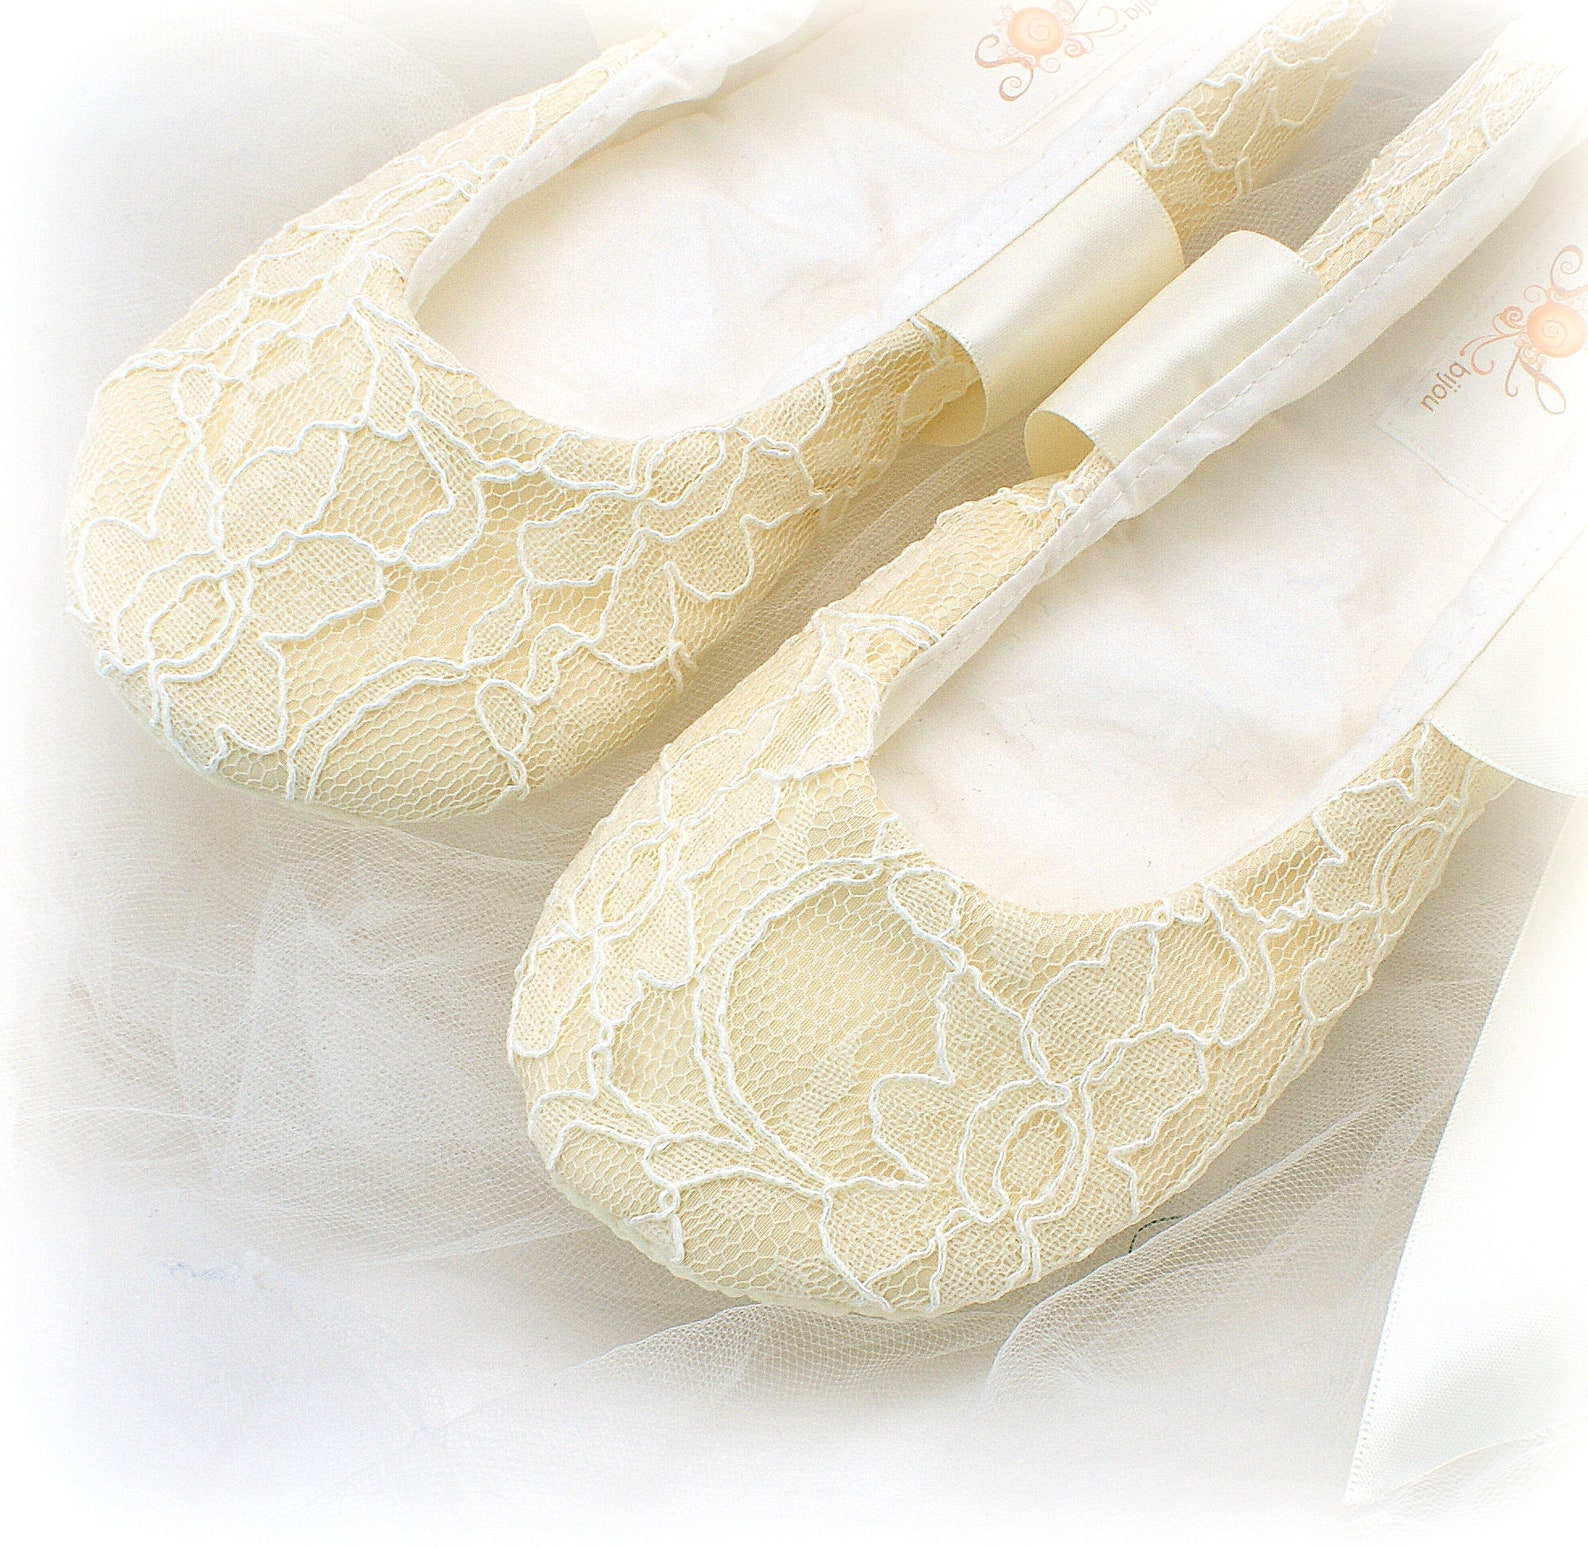 champagne ballet shoes lace ballet flats ivory ballet slippers wedding ballet shoes ivory bridal flats shoes